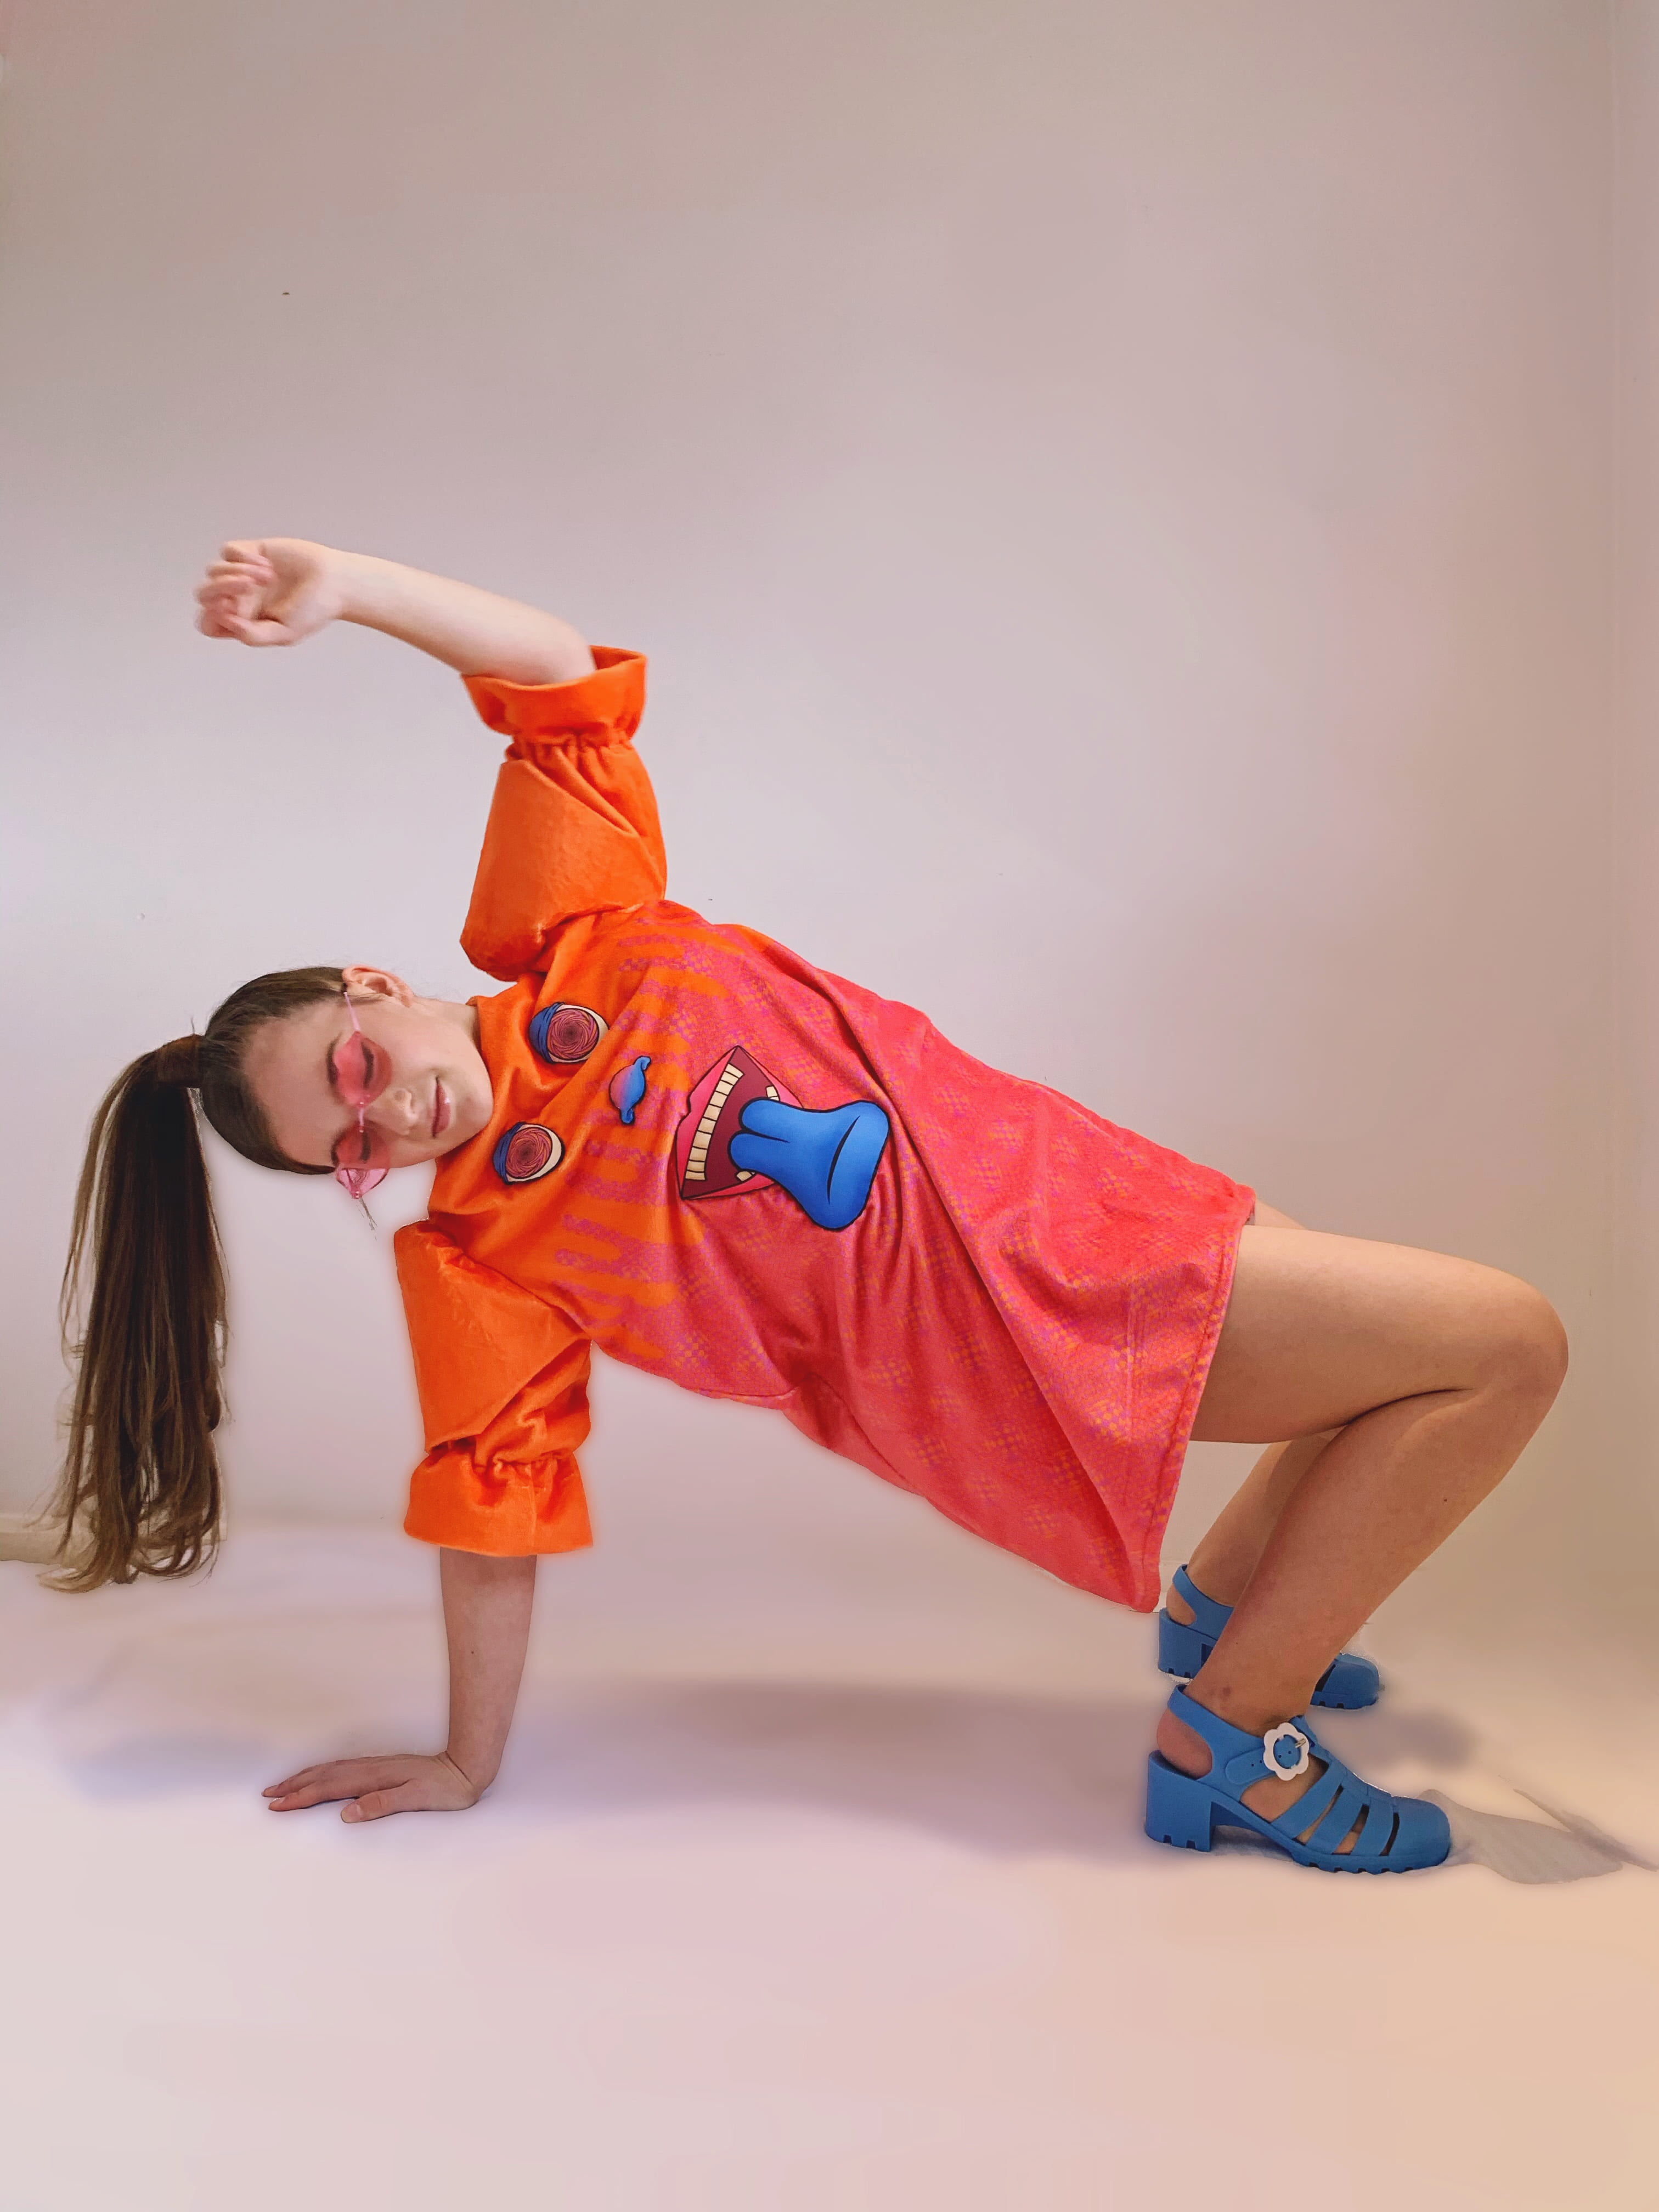 Photograph of a girl posing on the floor in an item in the 'Let's Get Trippy' collection.